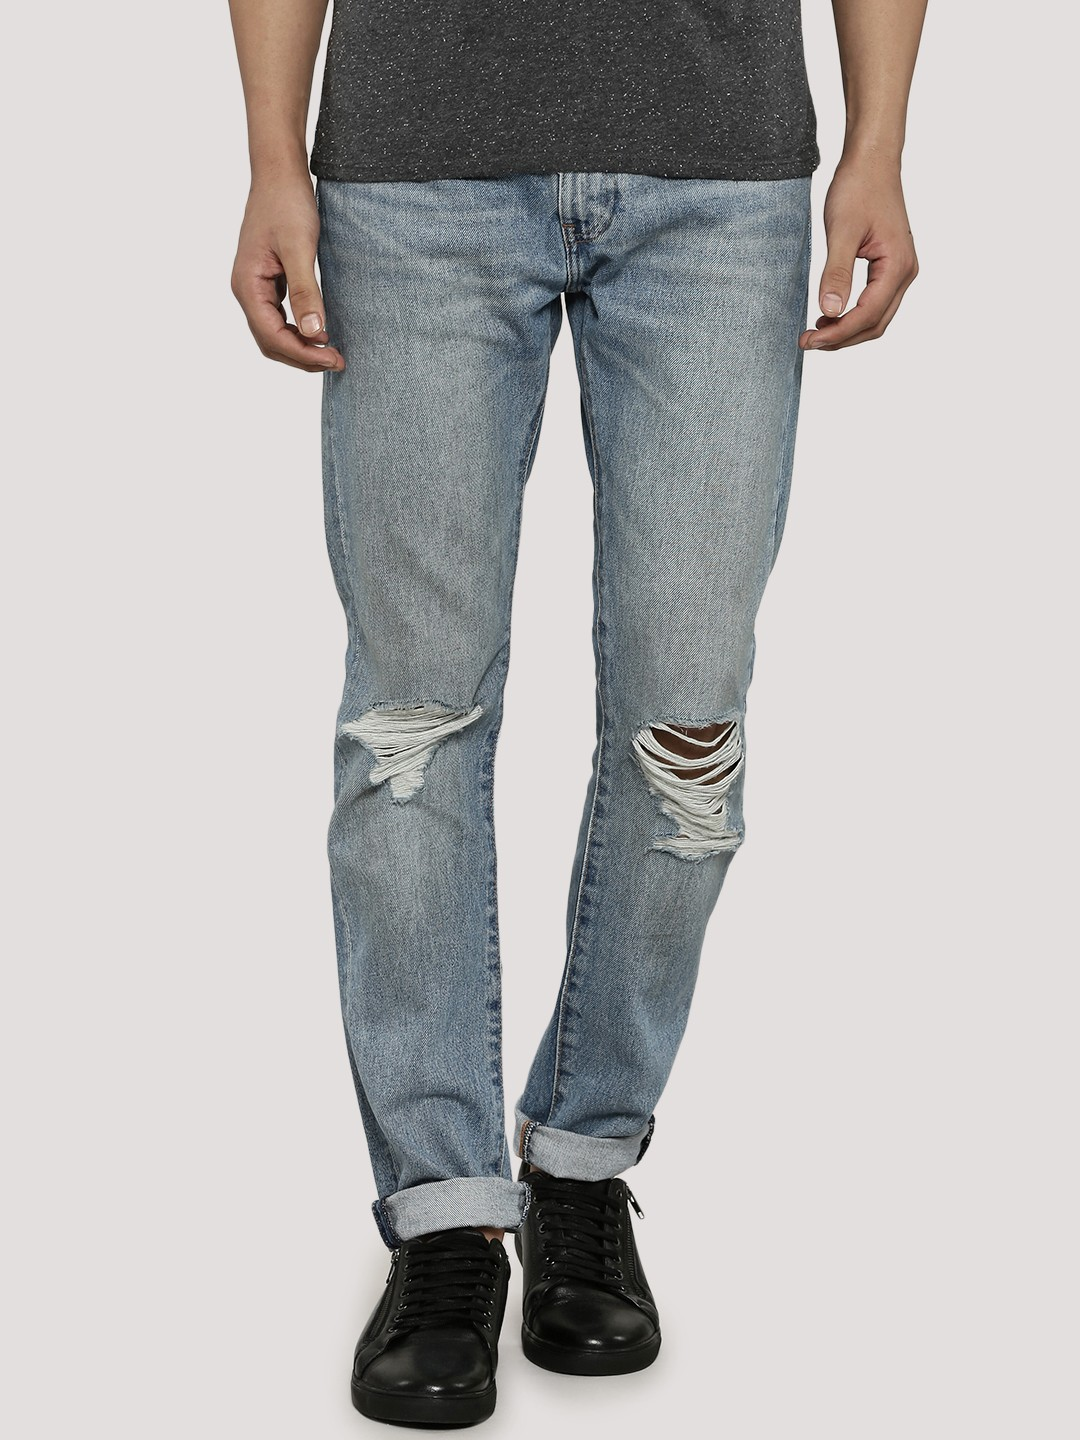 LEVI'S 505 Icon Slim Fit Knee Ripped Jeans - Buy LEVI'S 505 Icon Slim Fit Knee Ripped Jeans For Men - Men's